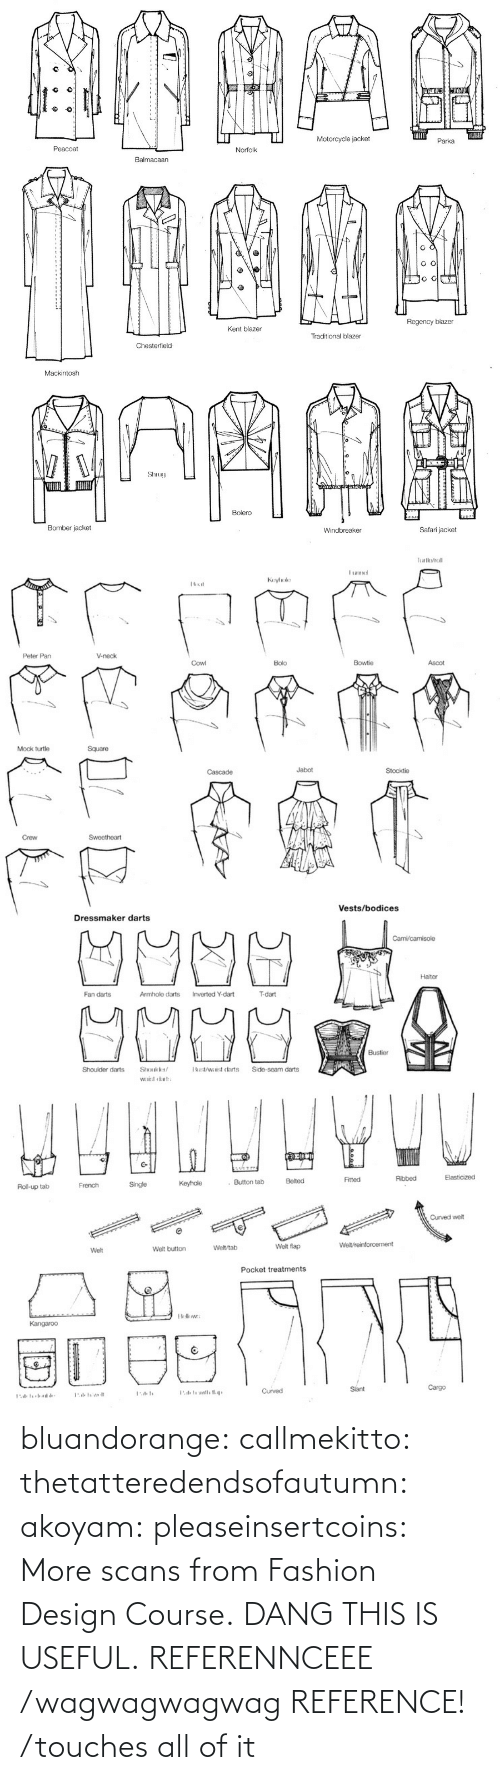 amazon.com: bluandorange:  callmekitto:  thetatteredendsofautumn:  akoyam:  pleaseinsertcoins:  More scans from Fashion Design Course.  DANG THIS IS USEFUL.  REFERENNCEEE  /wagwagwagwag REFERENCE!  /touches all of it